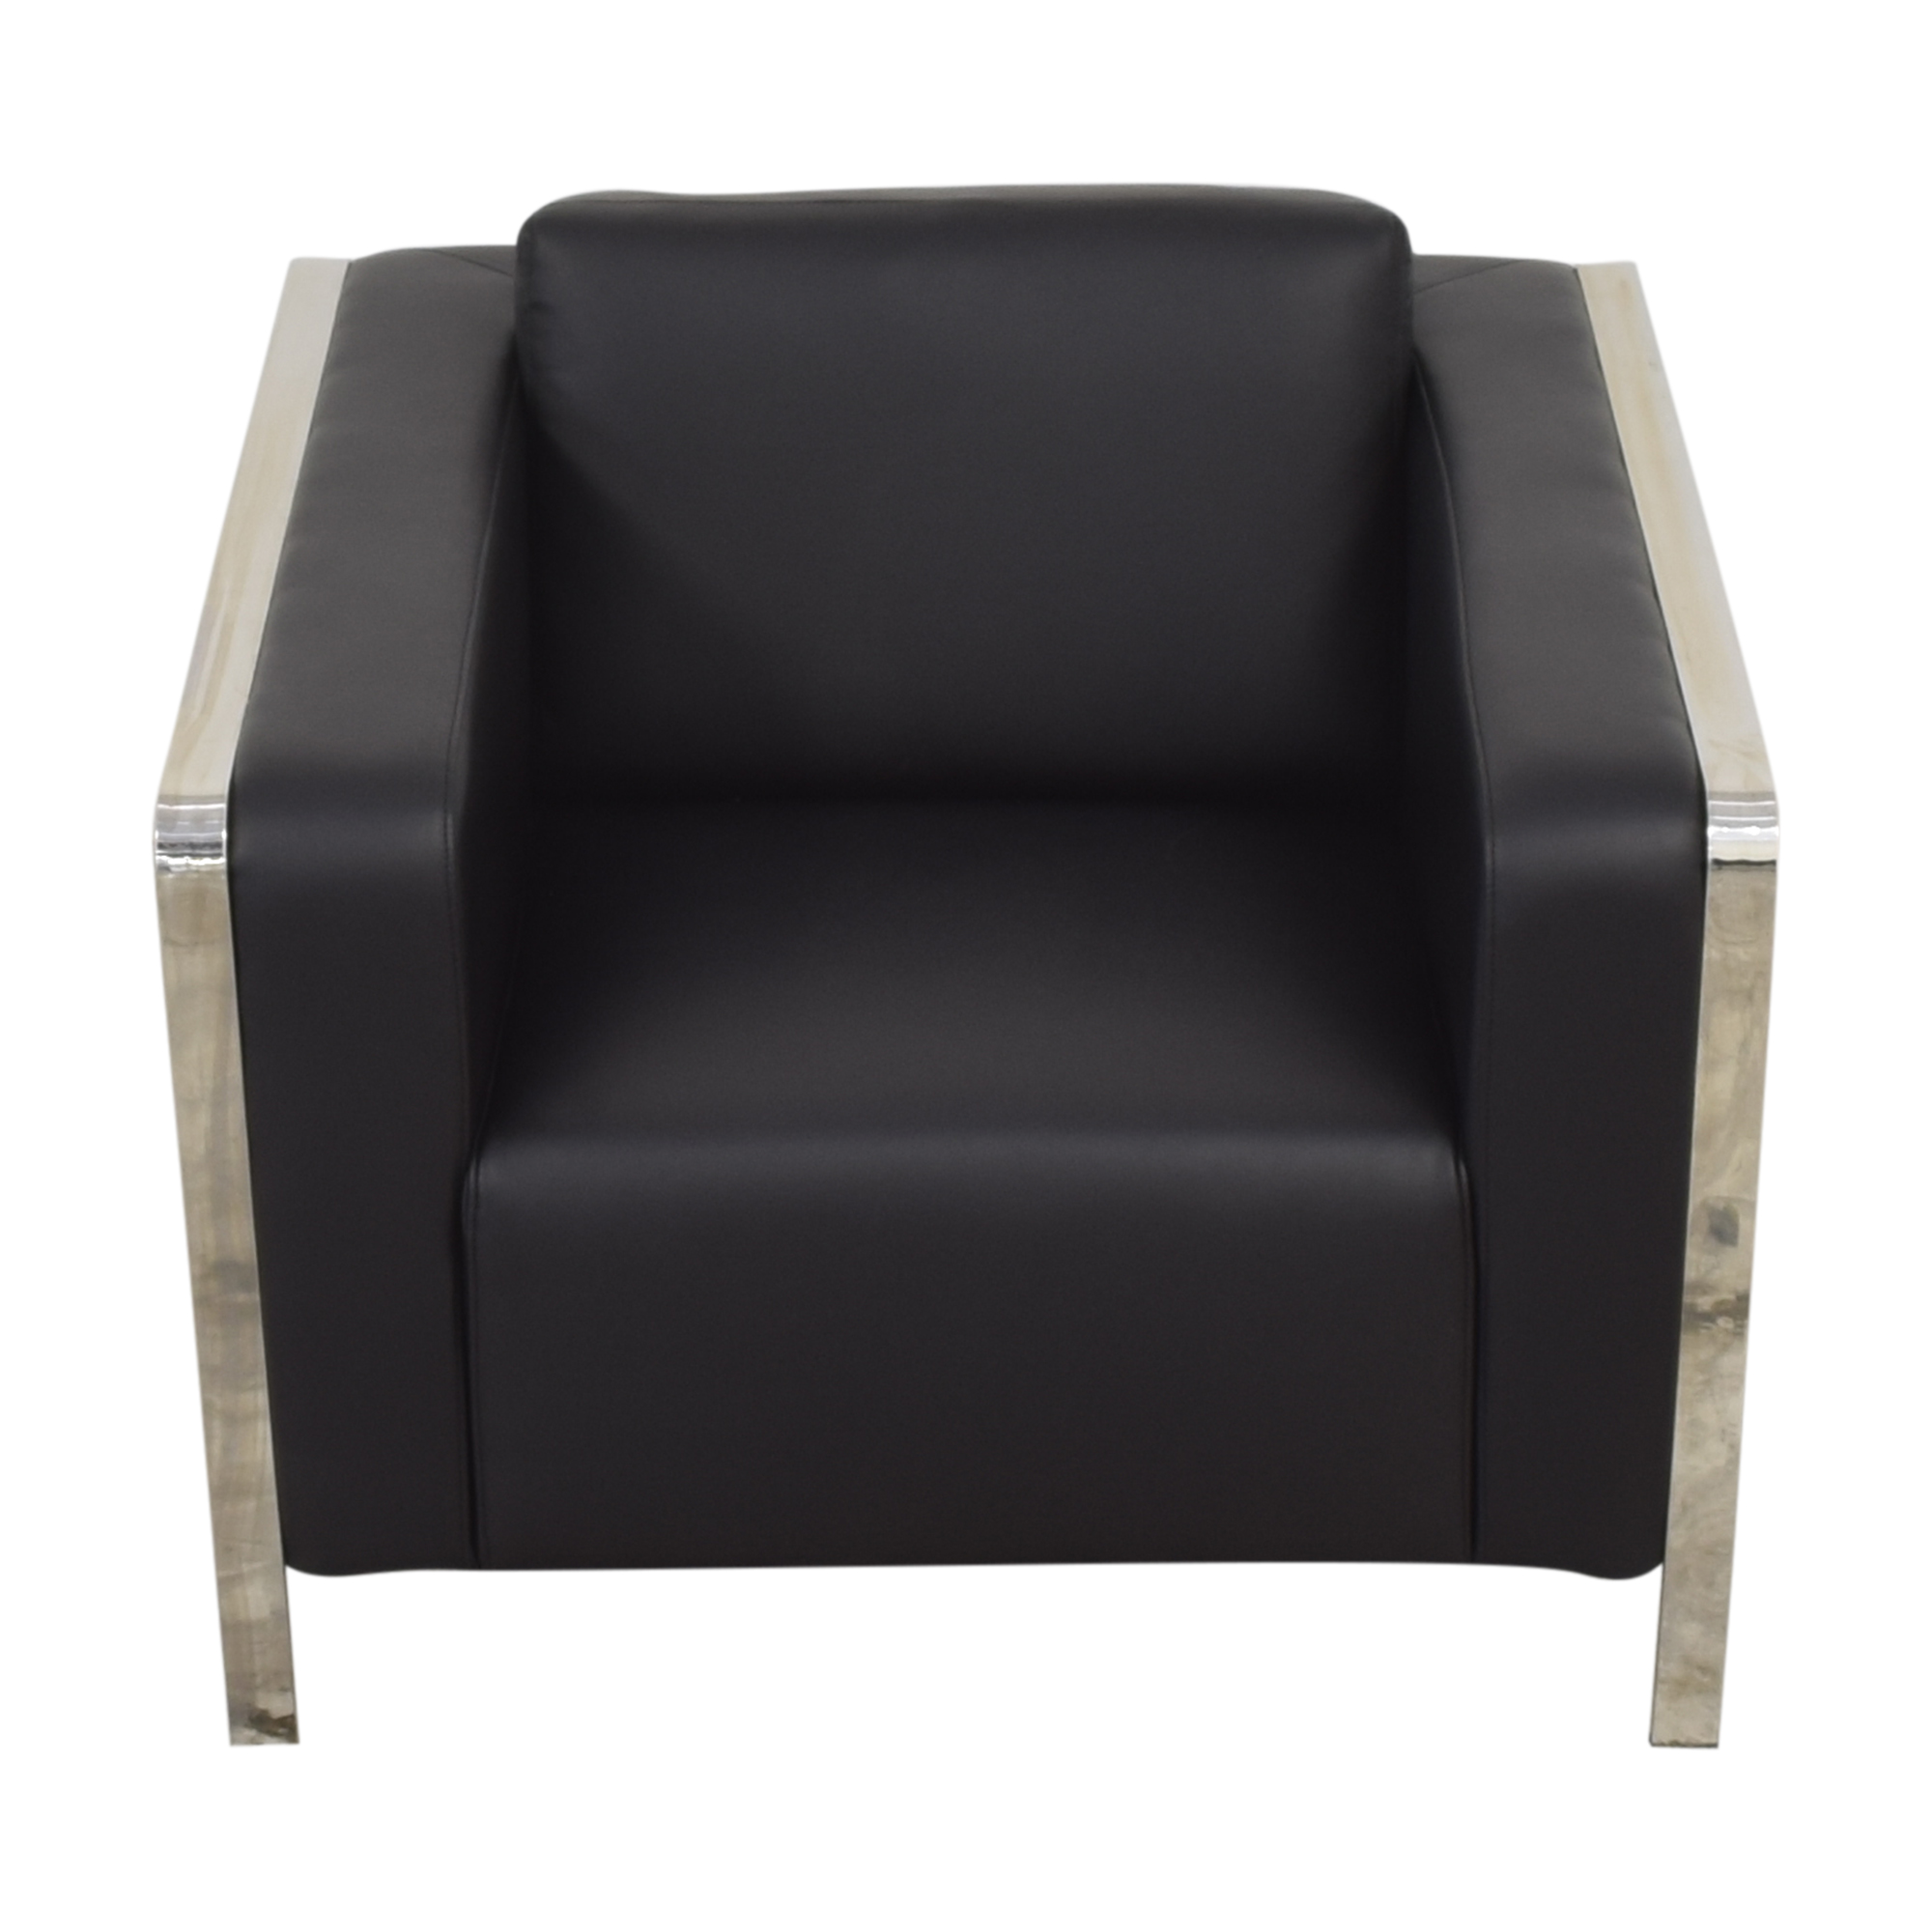 Zuo Modern Zuo Modern Thor Armchair black and silver